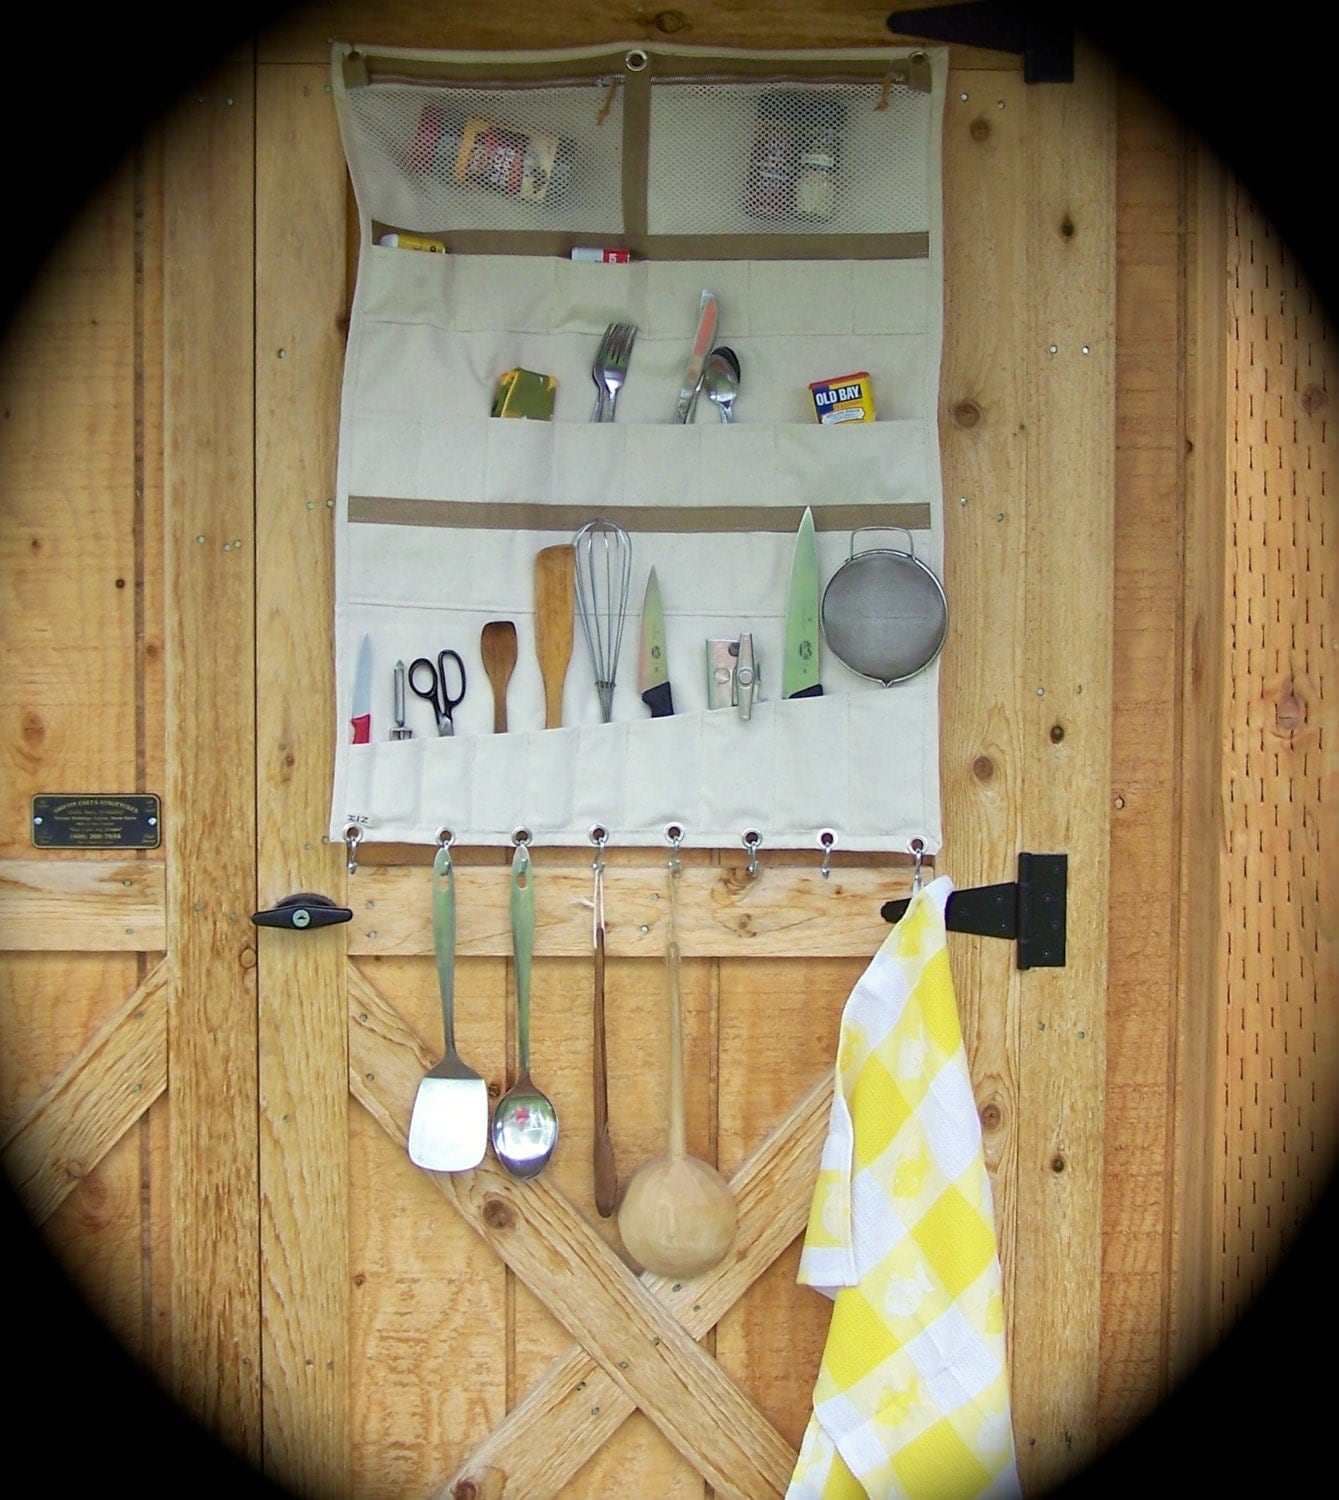 Wall Tent Camp Kitchen Cookware Organizer Hunting Camp Gear